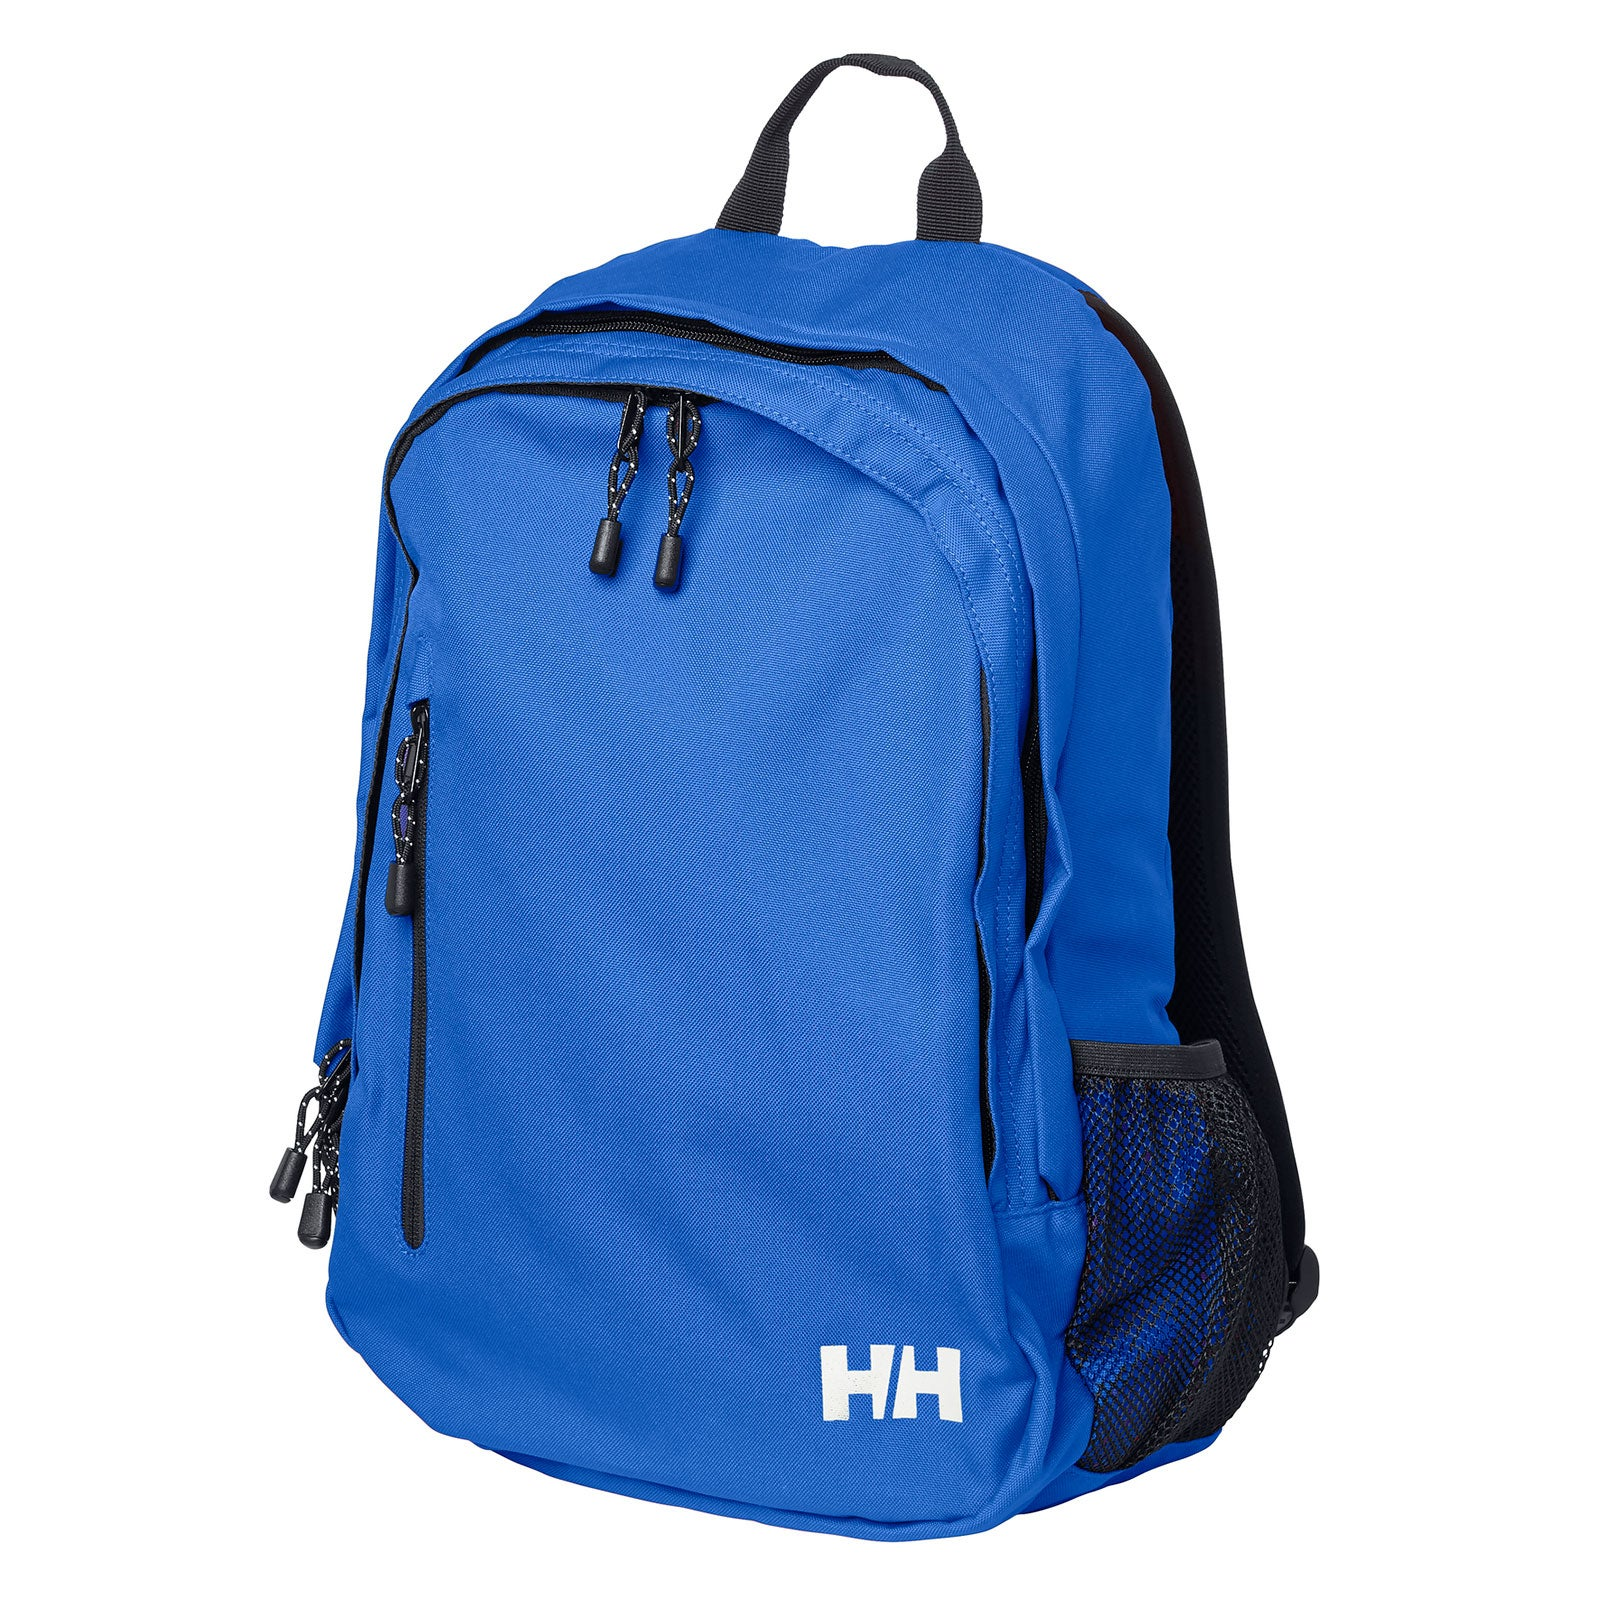 3d101f1b46 Helly Hansen HH Backpack available at Webtogs.com